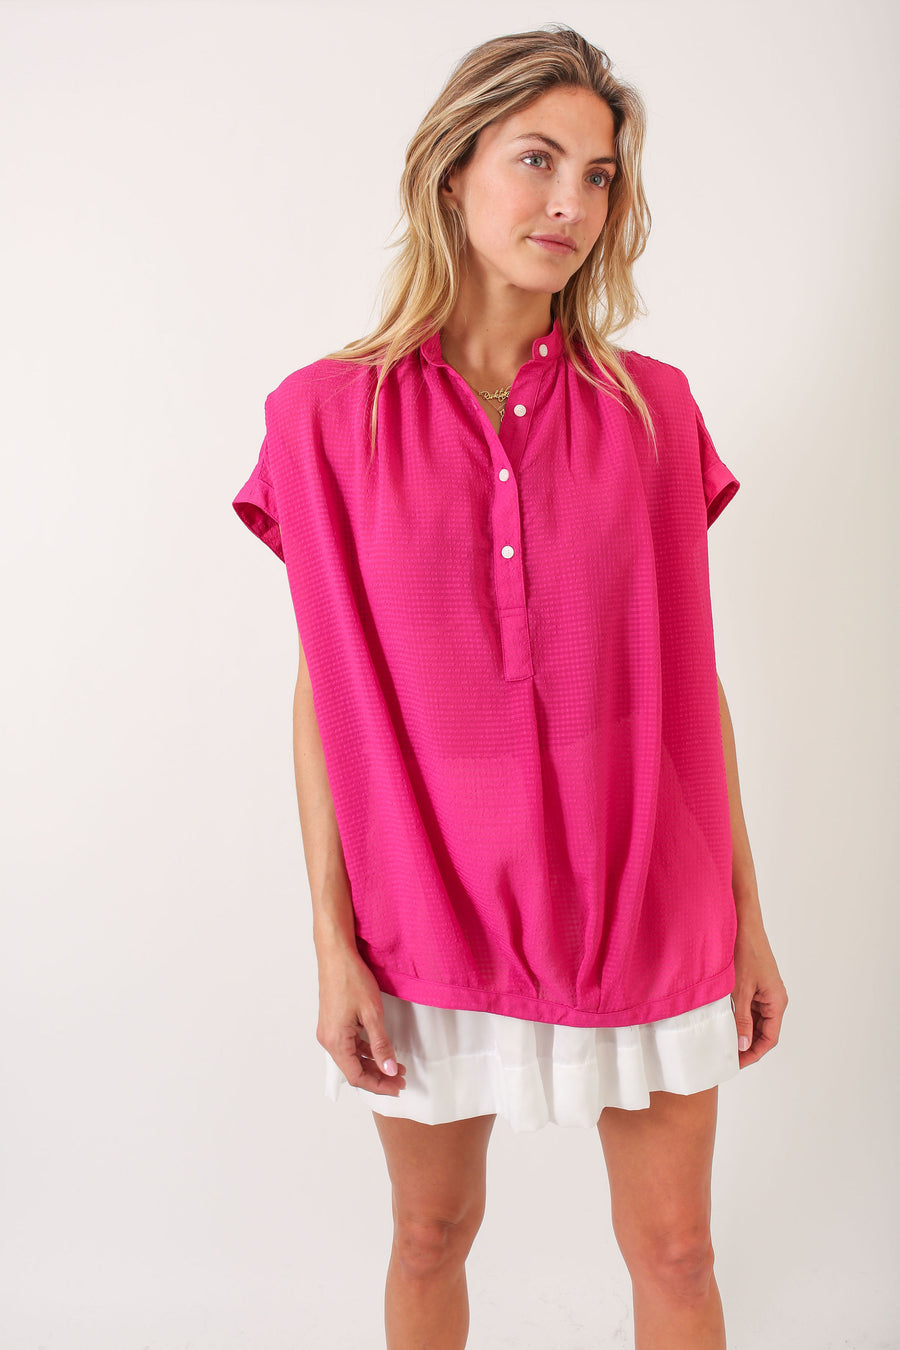 FERN TOP PINK CHIFFON  *LIMITED*EDITION*